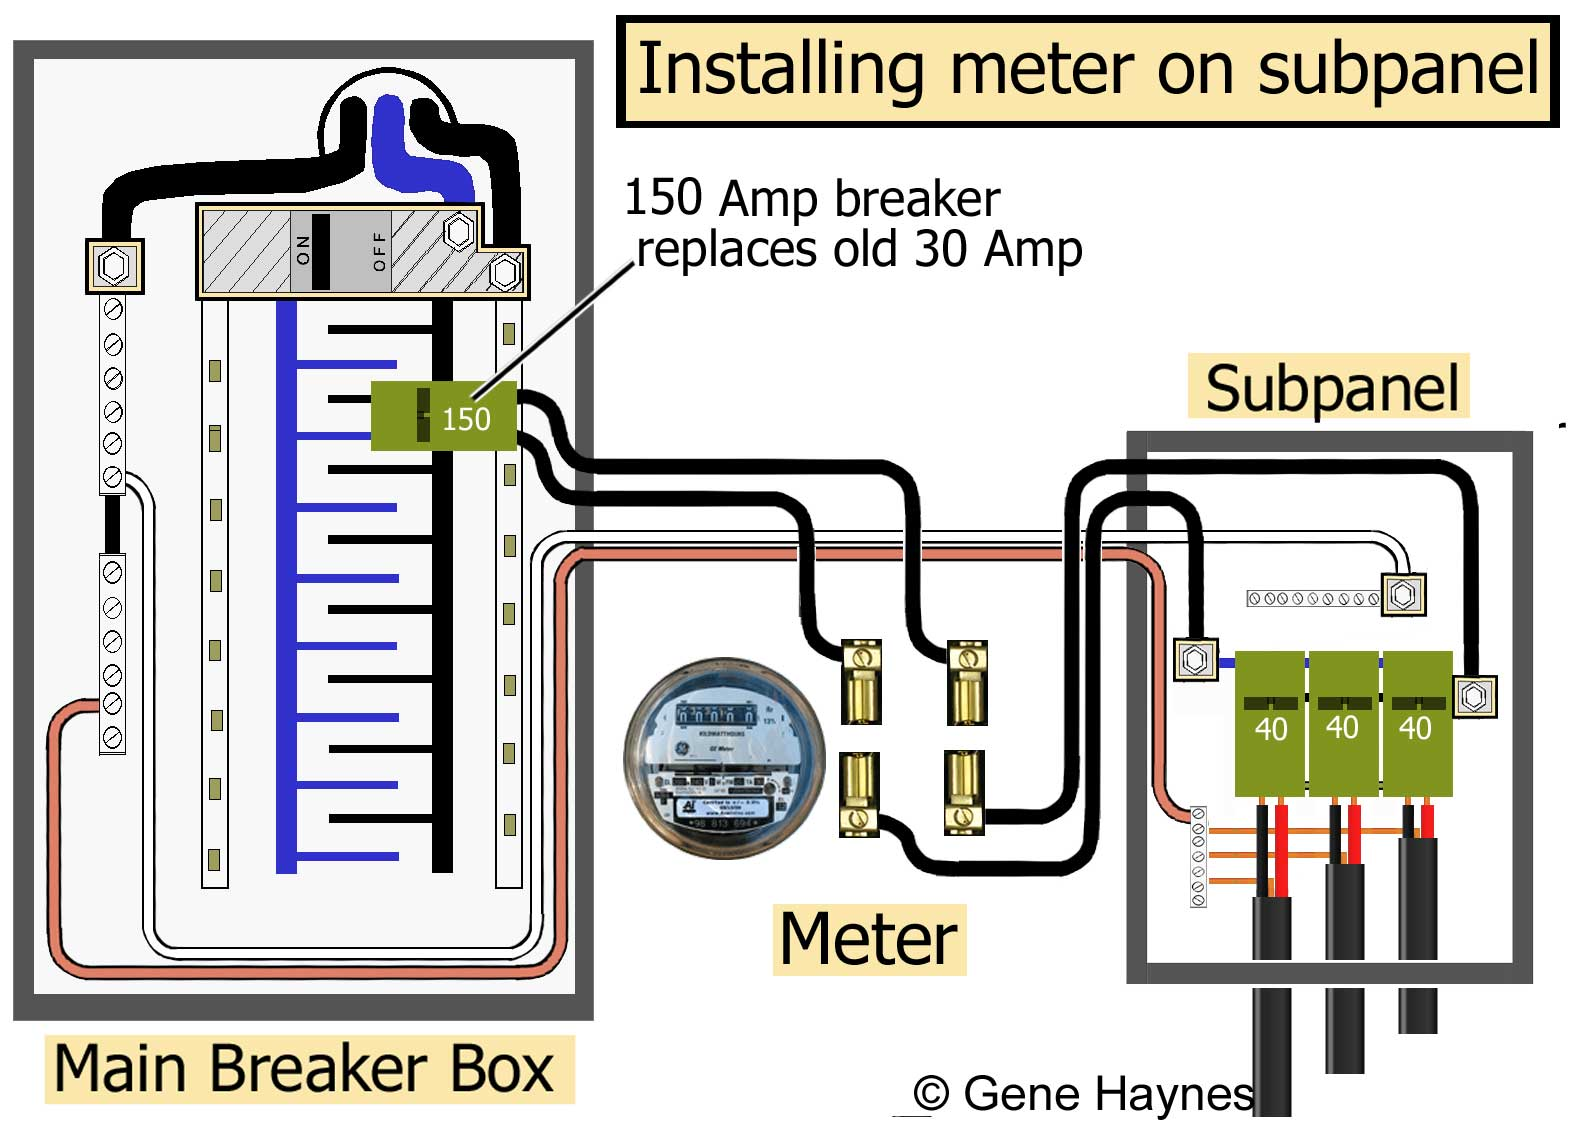 Neutral wire only necessary for 120Volt breakers. Illustration shows  Neutral wire in event you want a 120V-240 subpanel